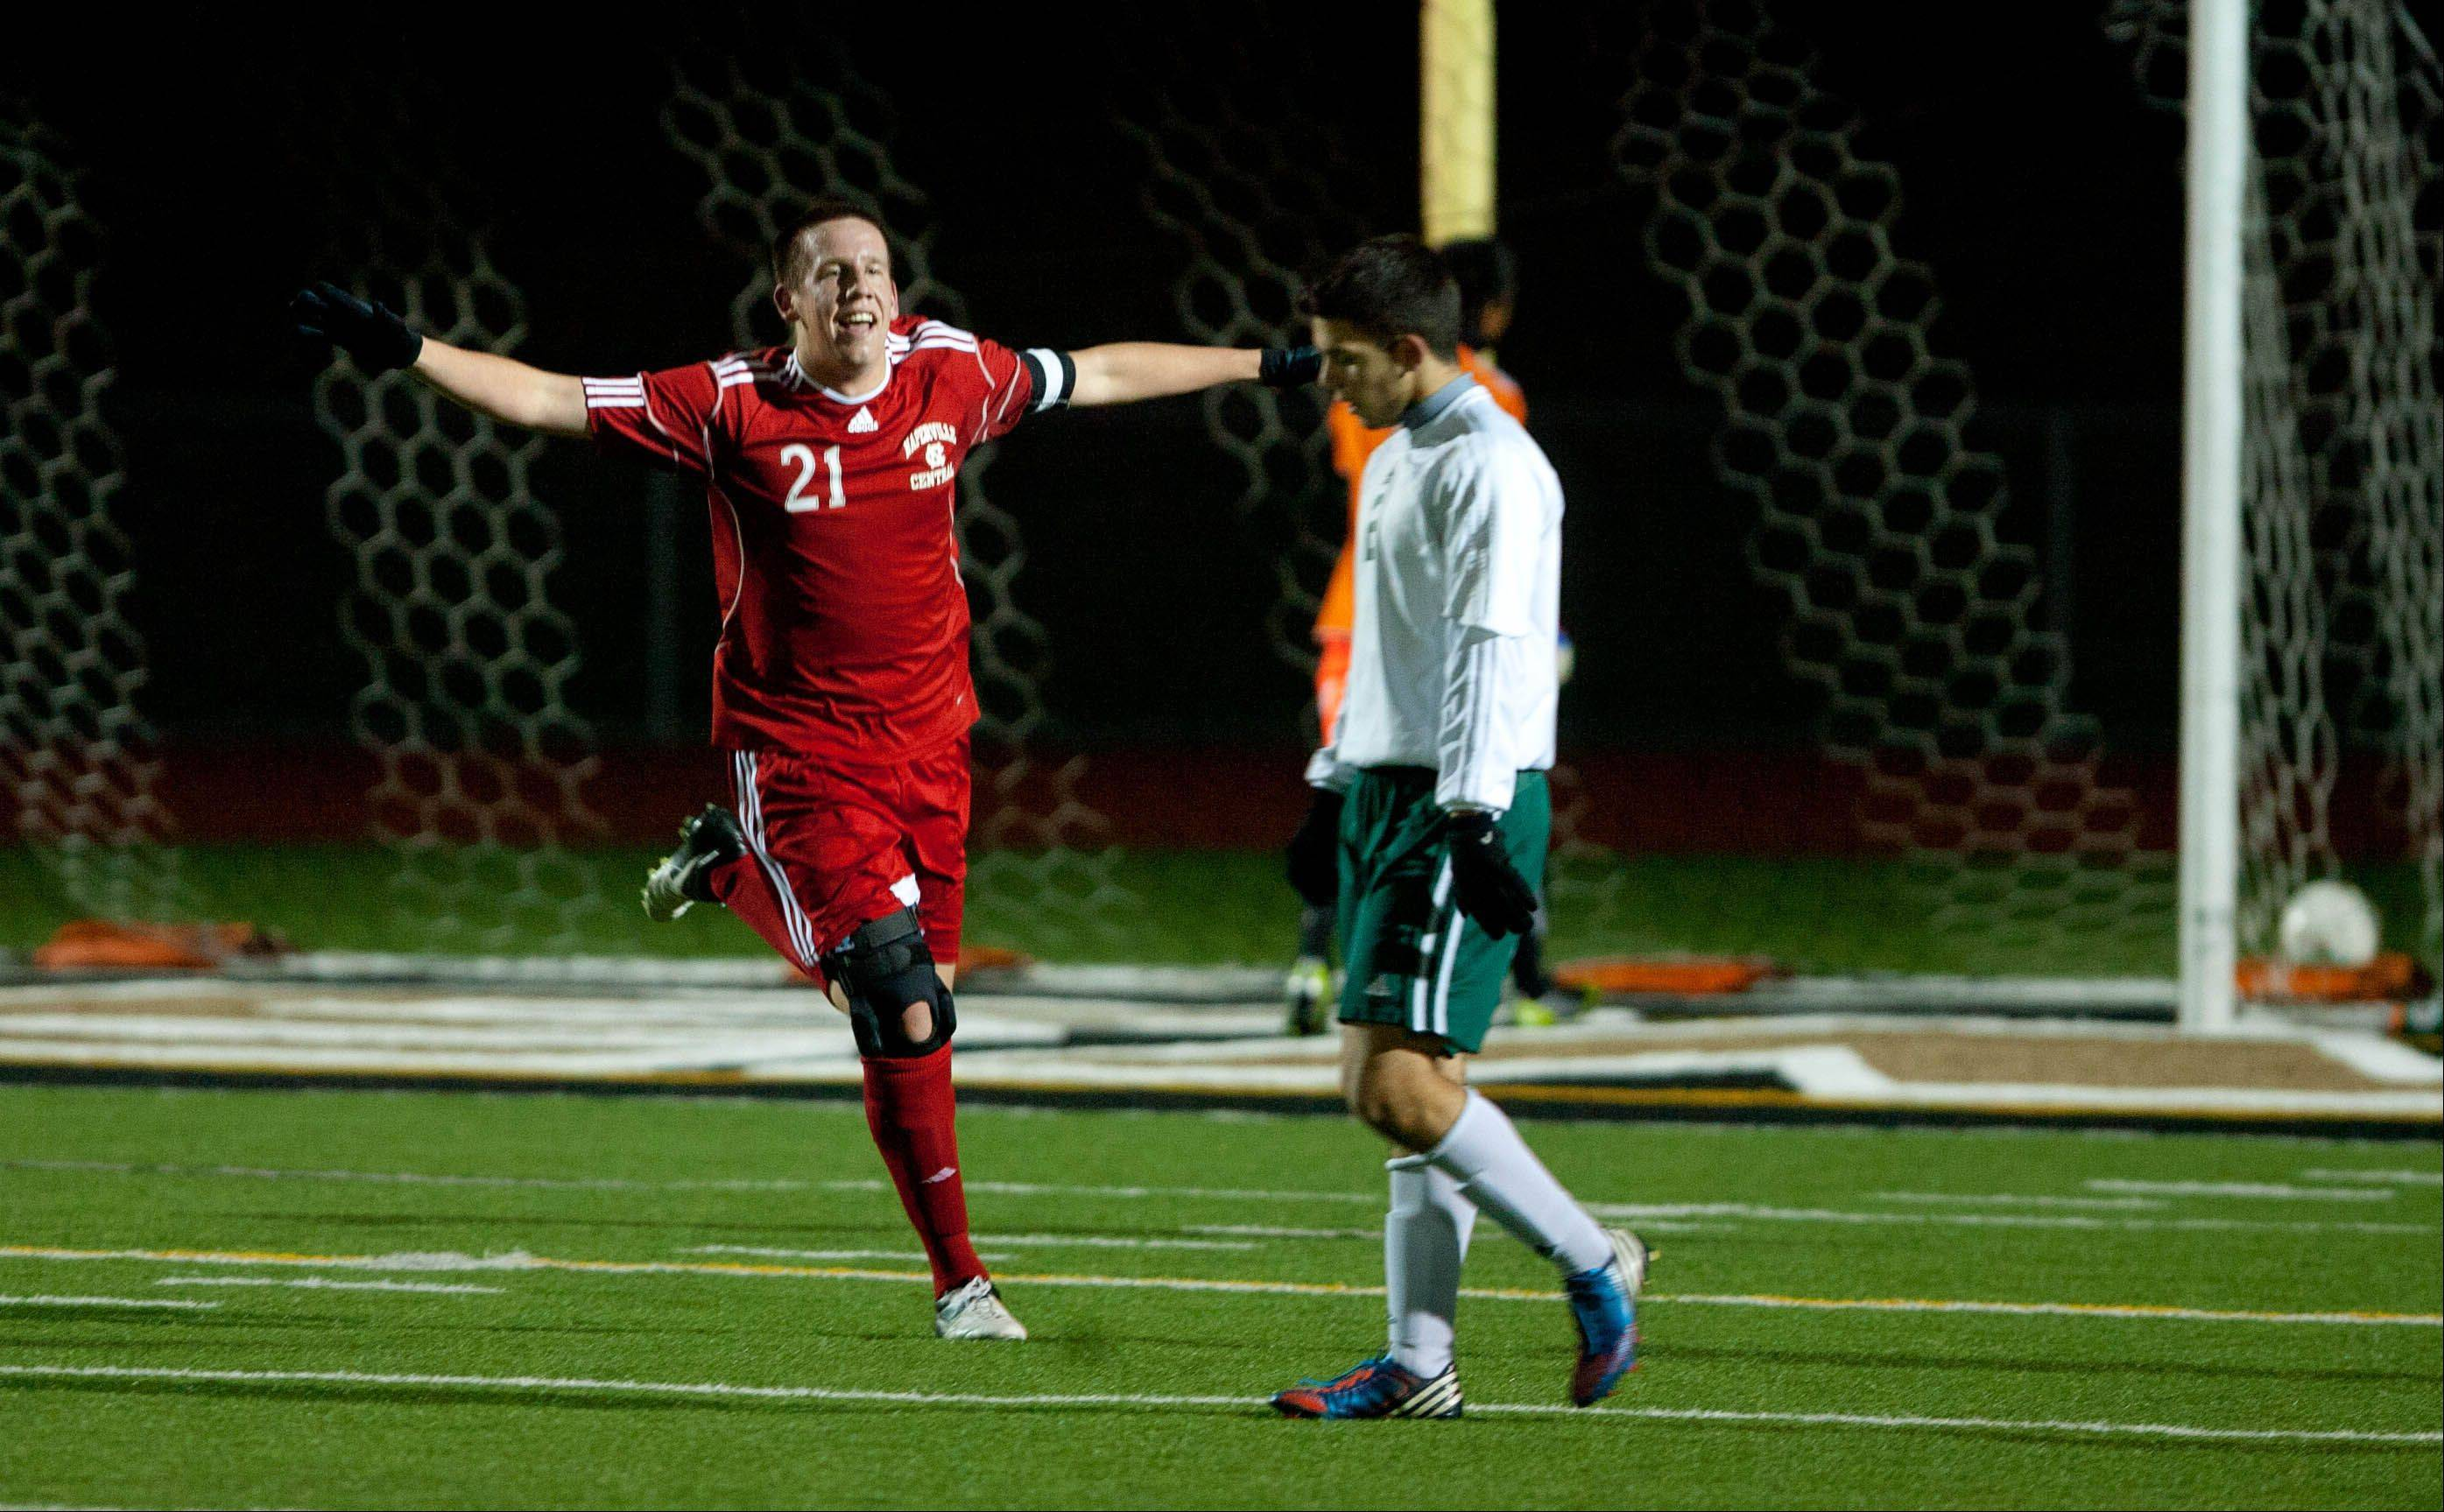 Naperville Central's Jack Patrick (21), celebrates his goal giving the Redhawks a 2-0 lead over Stevenson, during the boys 3A state semifinal soccer match held at Lincoln-Way North High School.